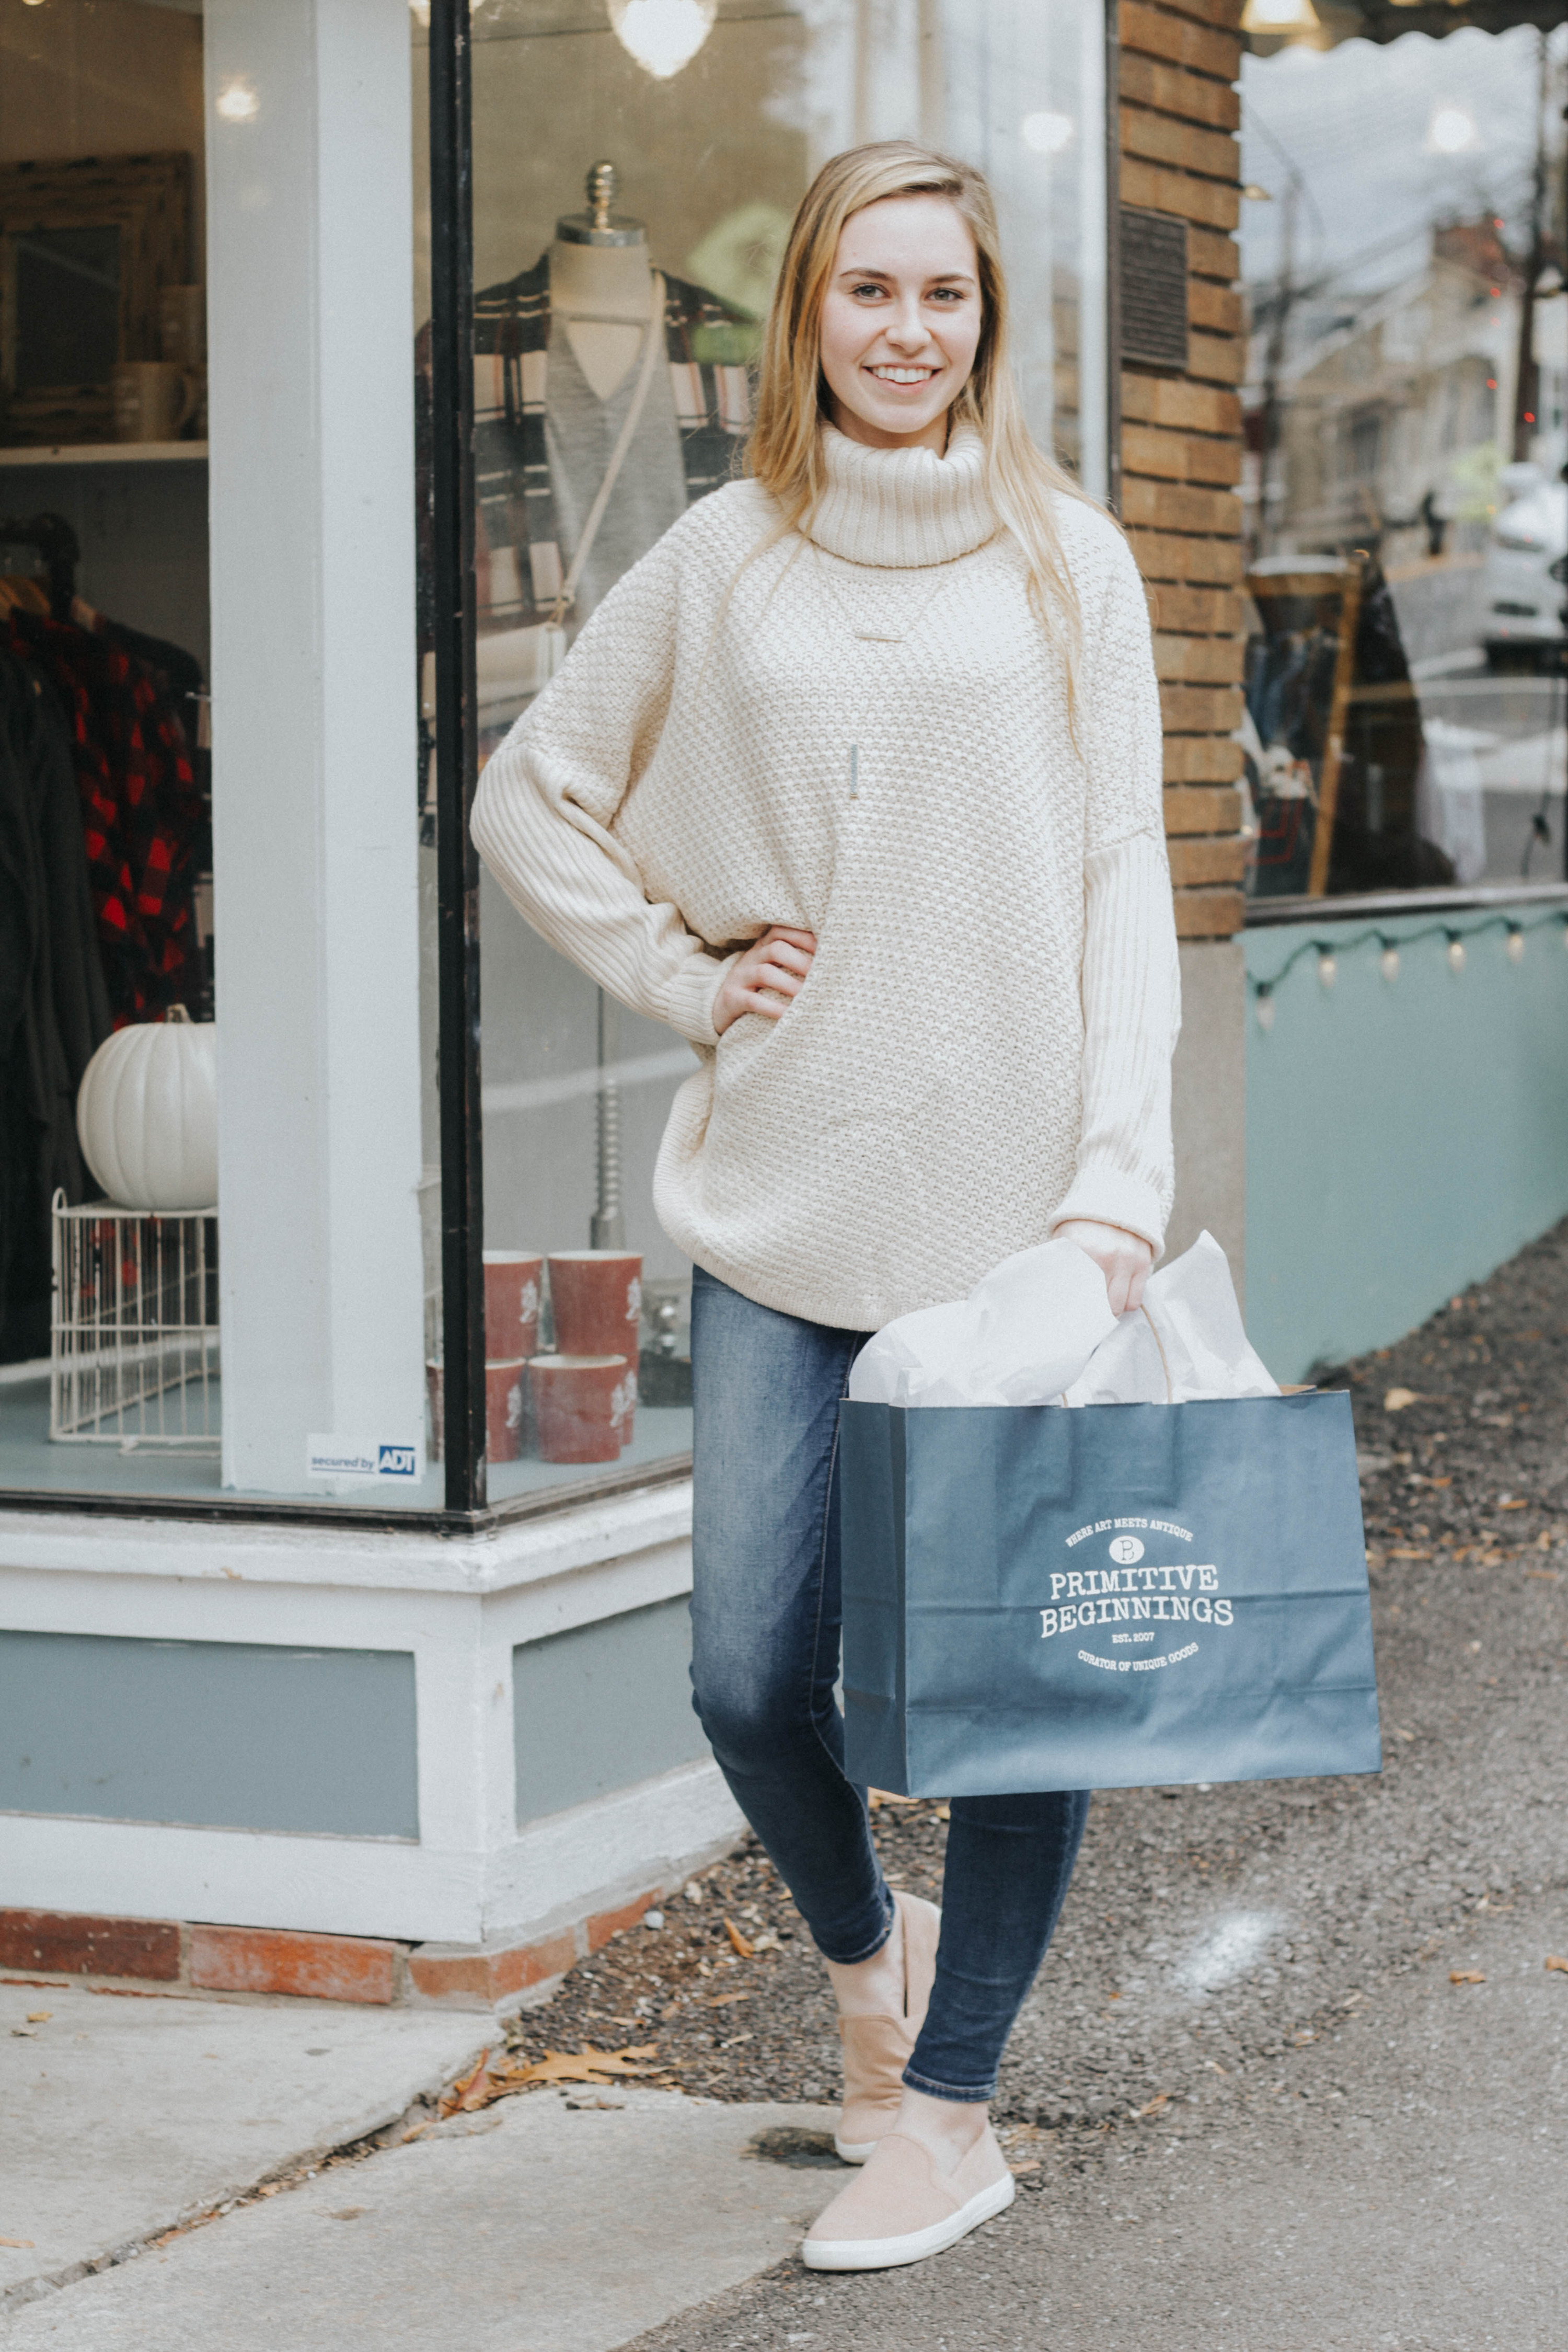 girl power event-shop small-small boutique-small business-elliott city-maryland-shop small business-womens apparel-womens gifts